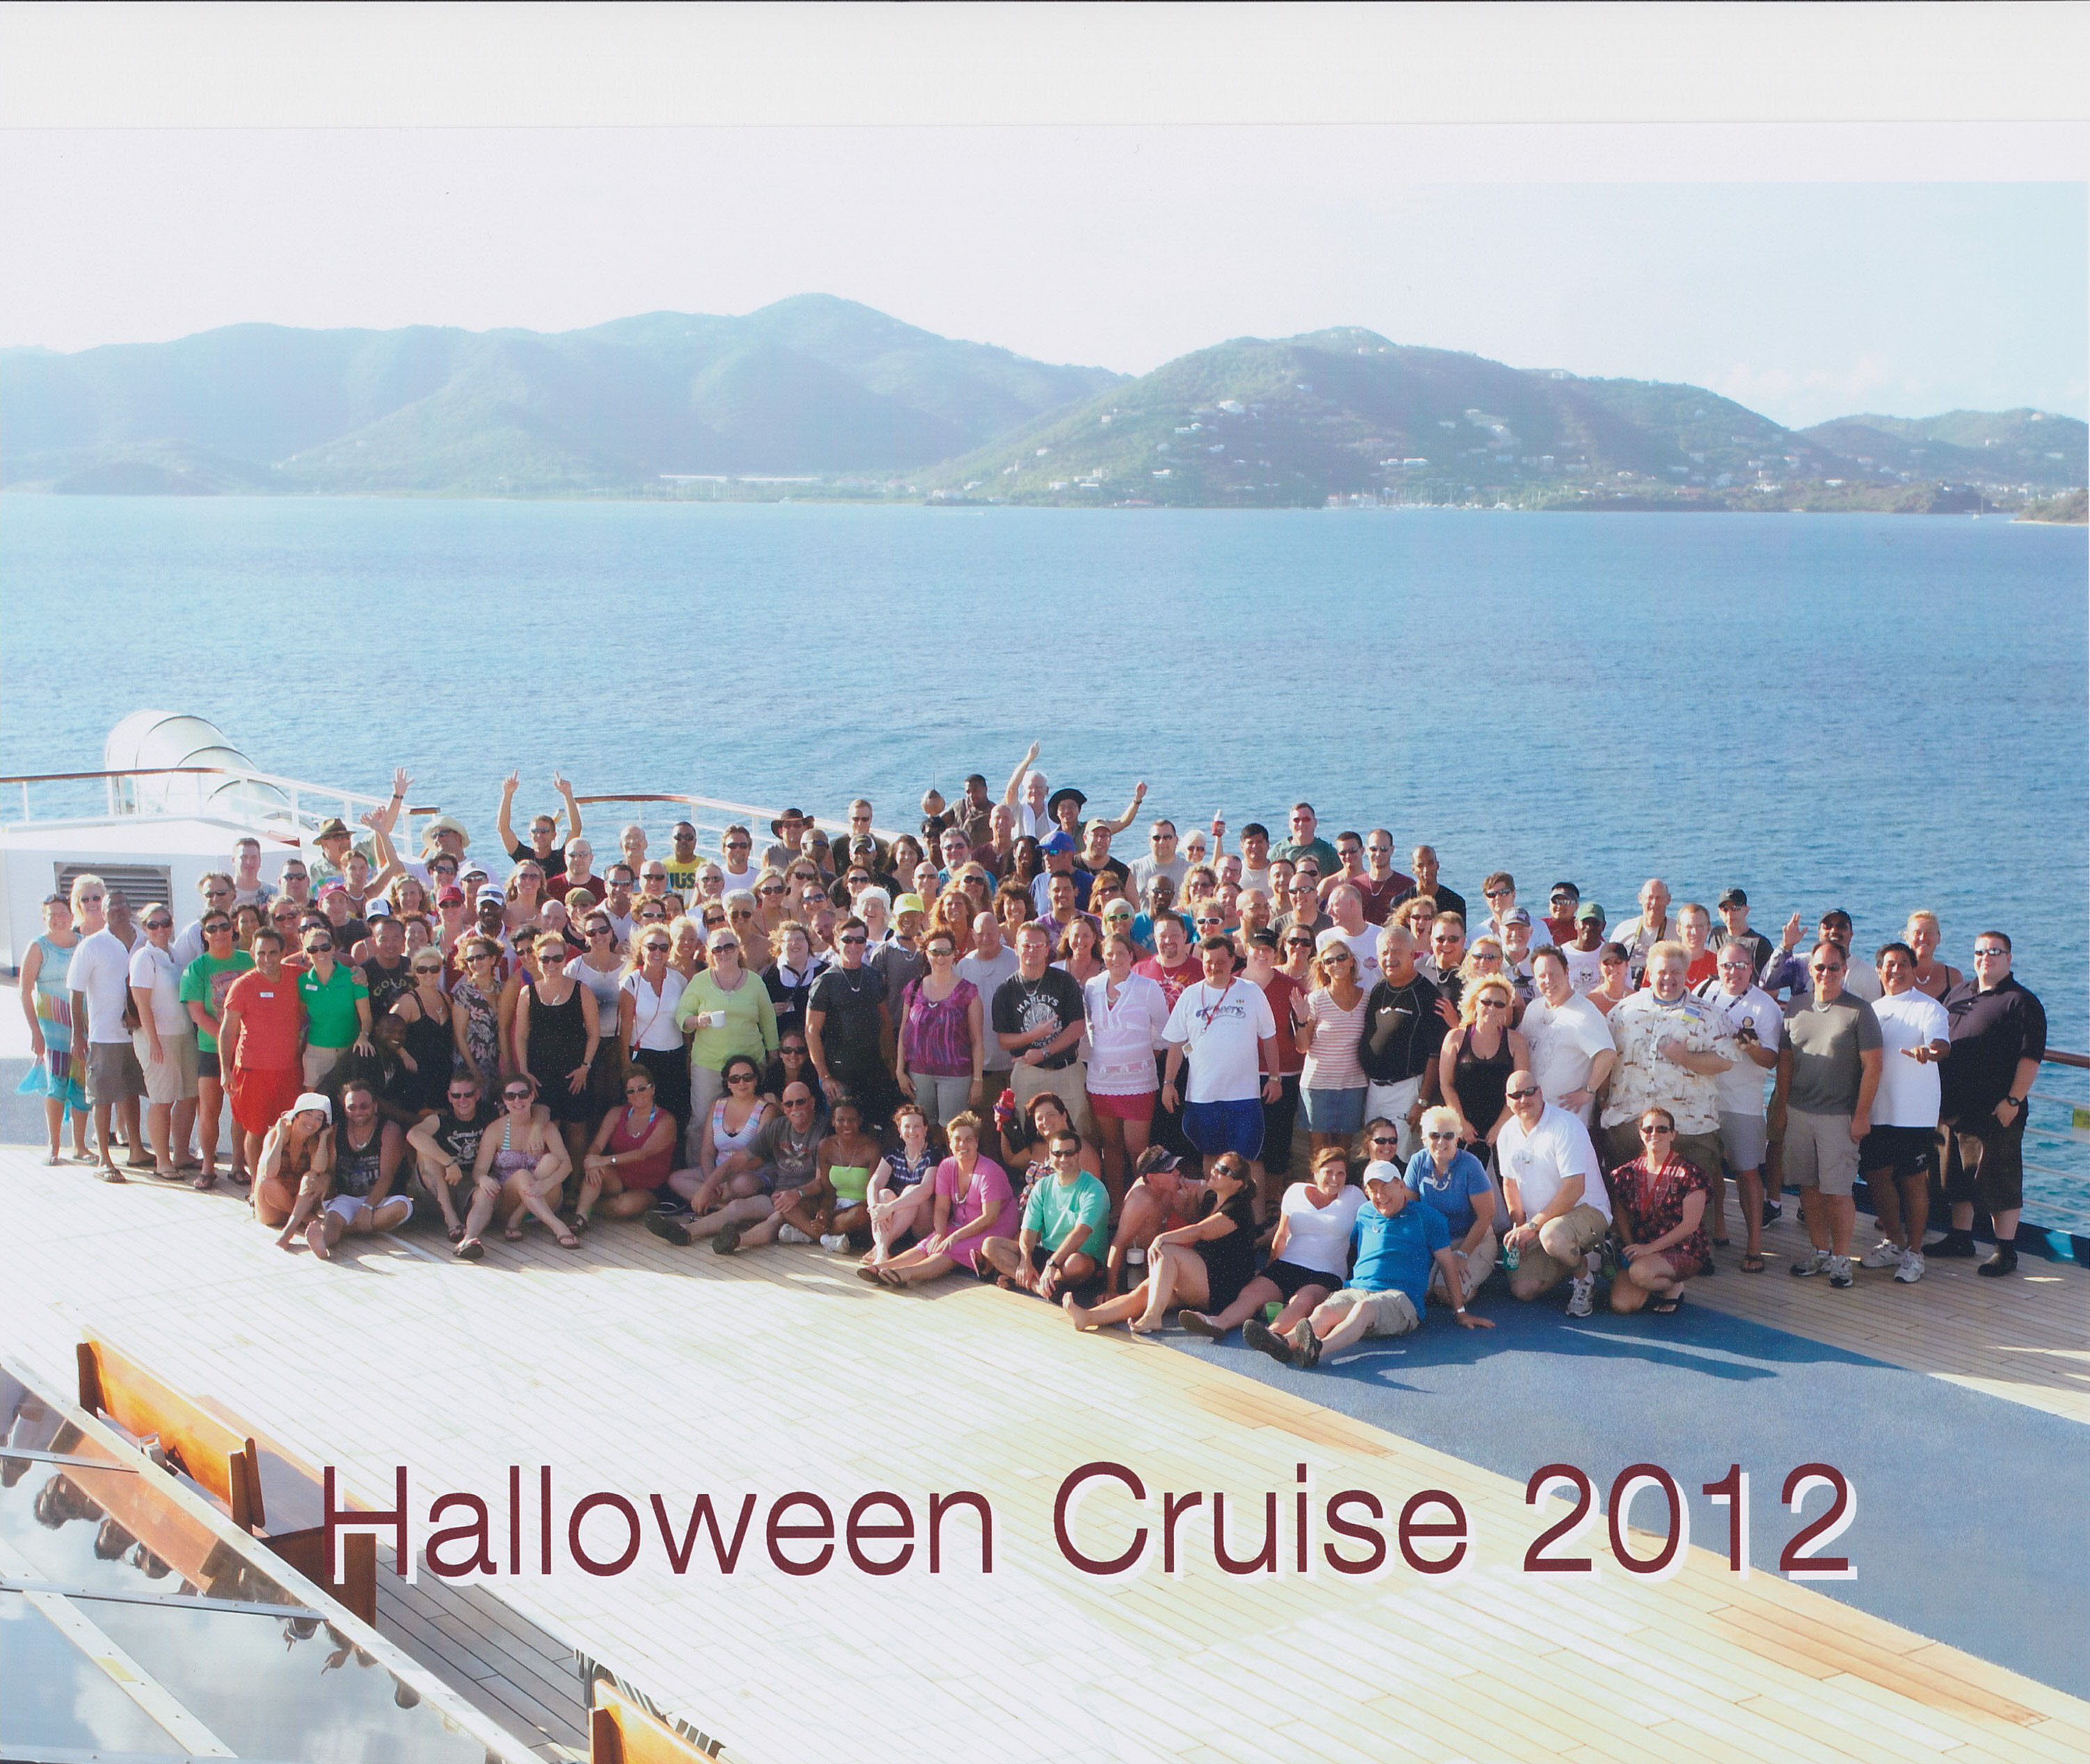 SinglesCruise.com Introduces New Events for Halloween Singles Cruise 2013